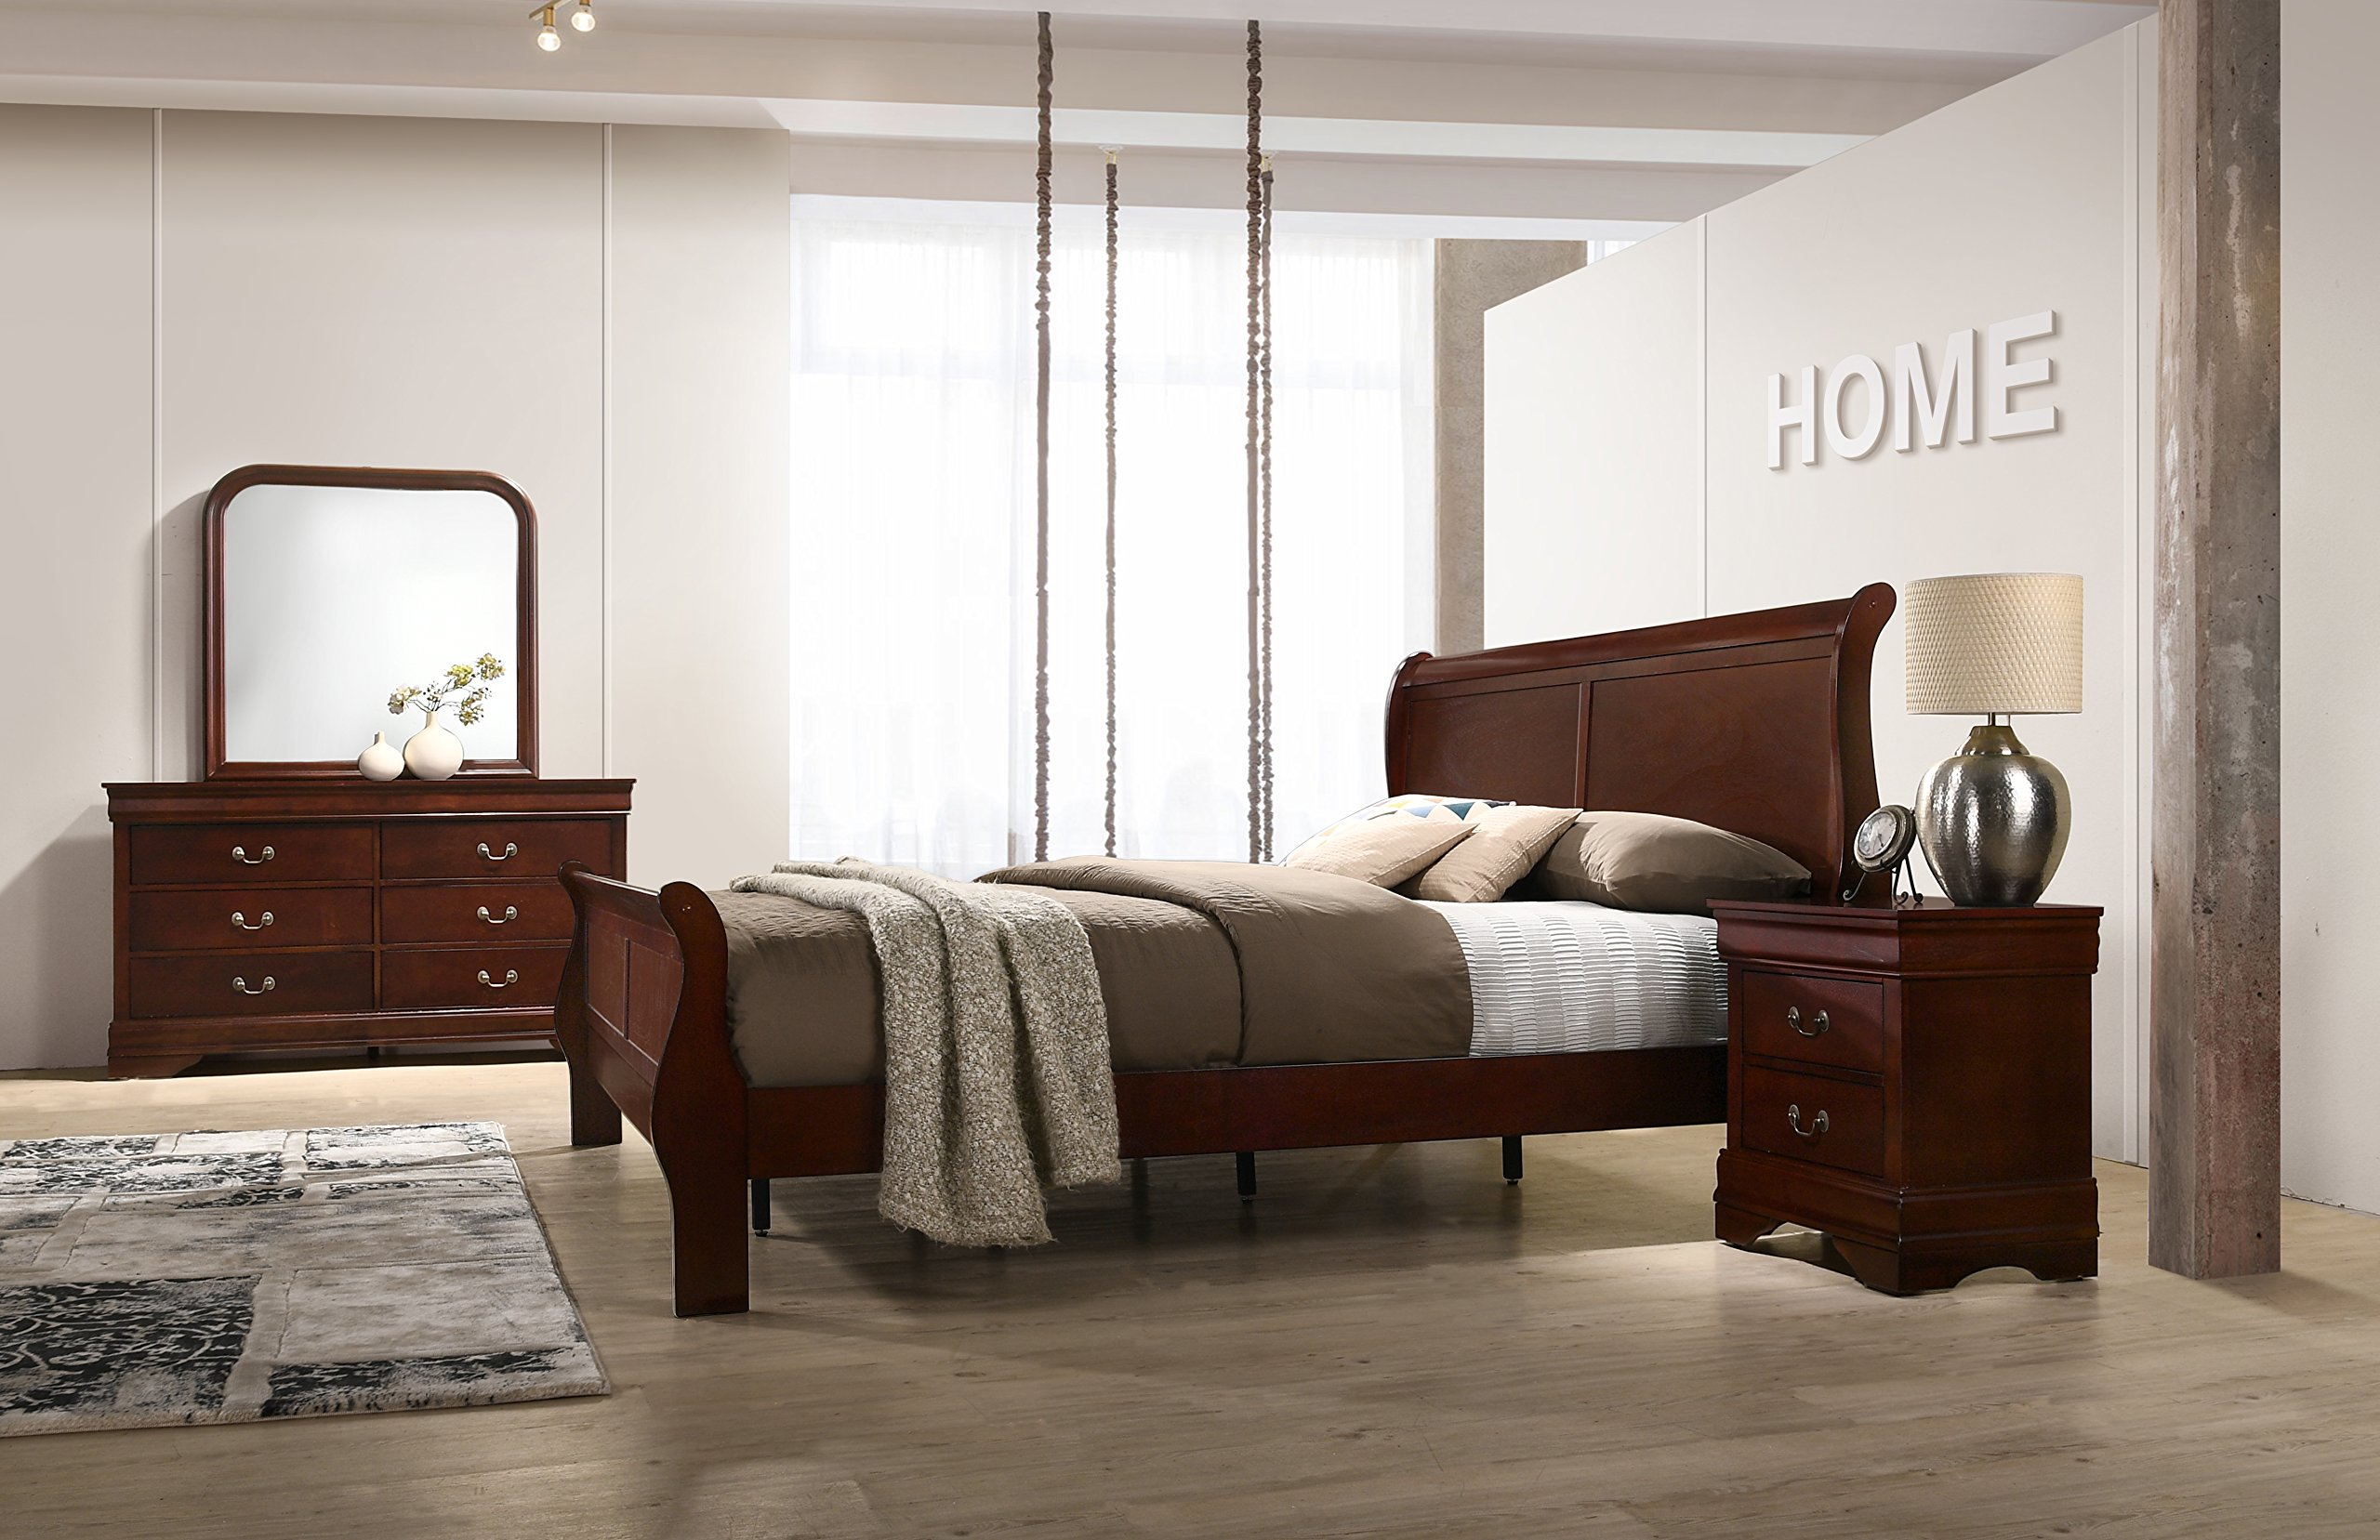 Roundhill Furniture Isola Louis Philippe Style Sleigh Bedroom Set, King Bed, Dresser, Mirror and Night Stand, Cherry Finish